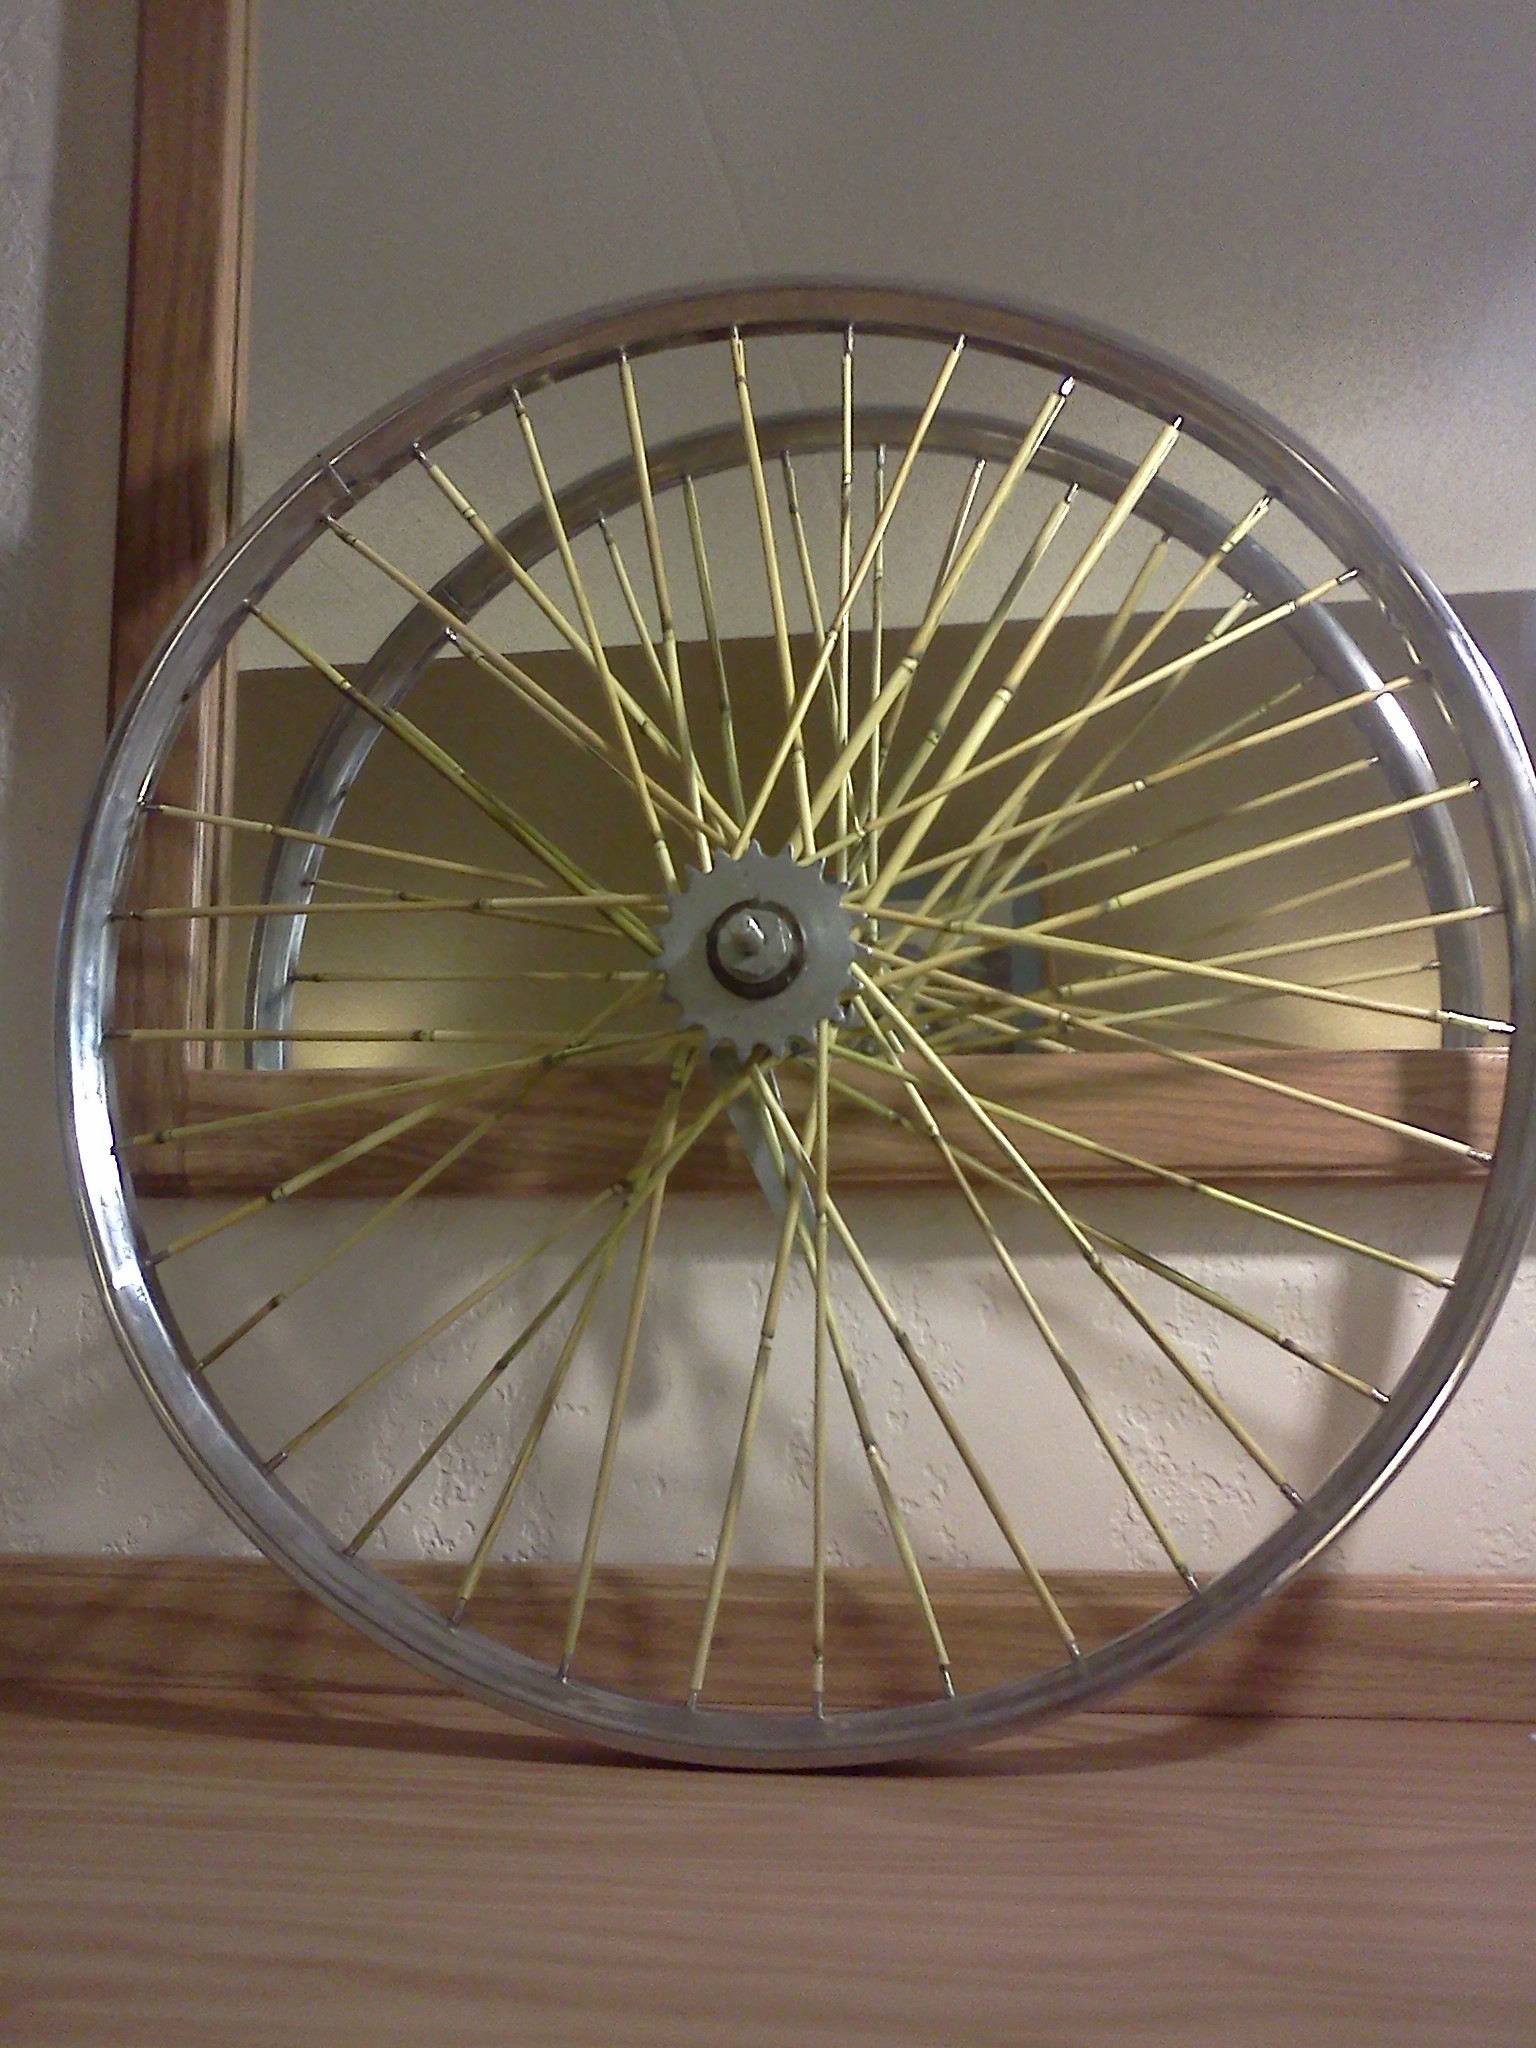 Bamboo / Reed Rims